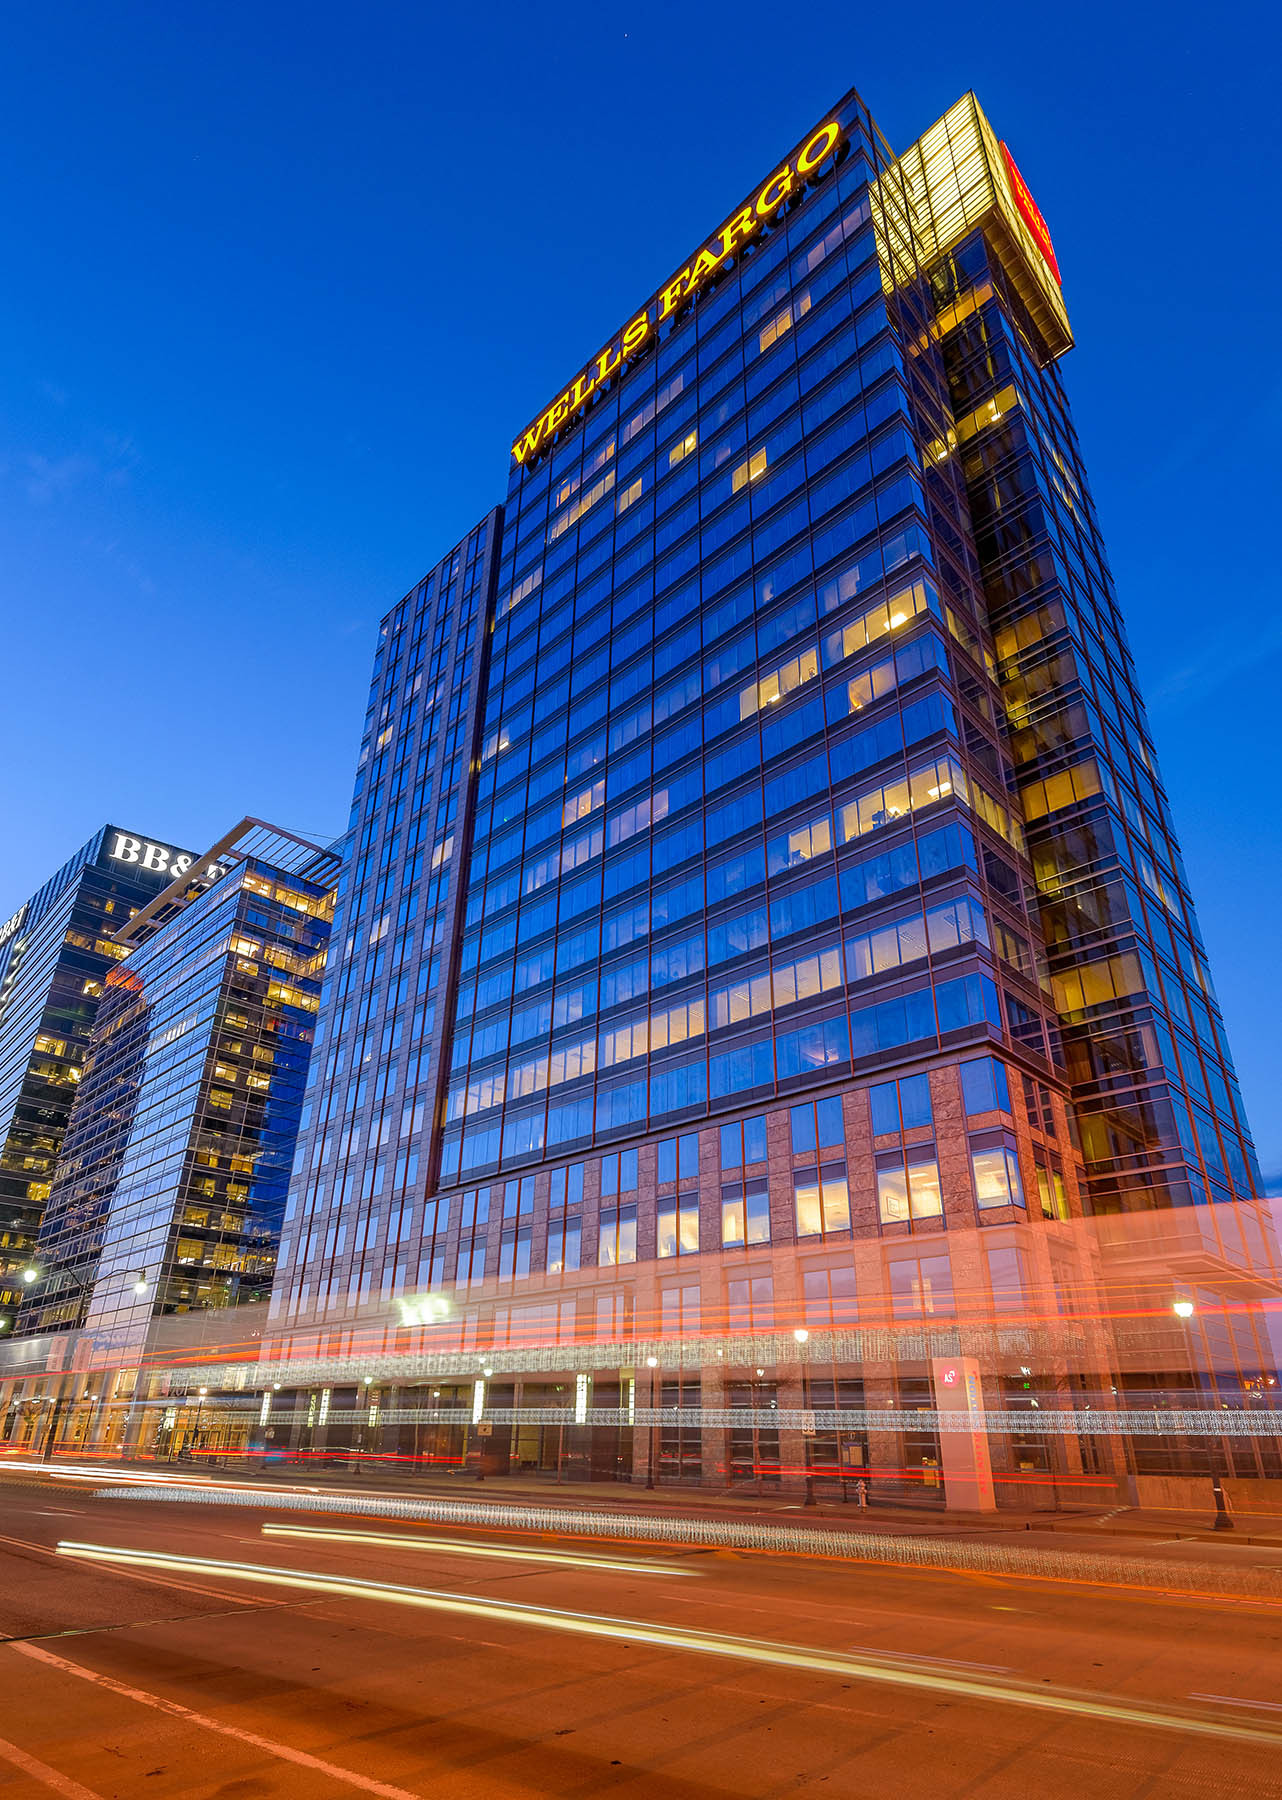 """KBS Real Estate Investment Trust III (""""KBS REIT III""""), a public non-traded real estate investment trust based in Newport Beach, Calif., announces the acquisition of 171 17th Street, a 21-story, trophy quality office building in Atlanta for $132.5 million plus closing costs. (Photo: Business Wire)"""